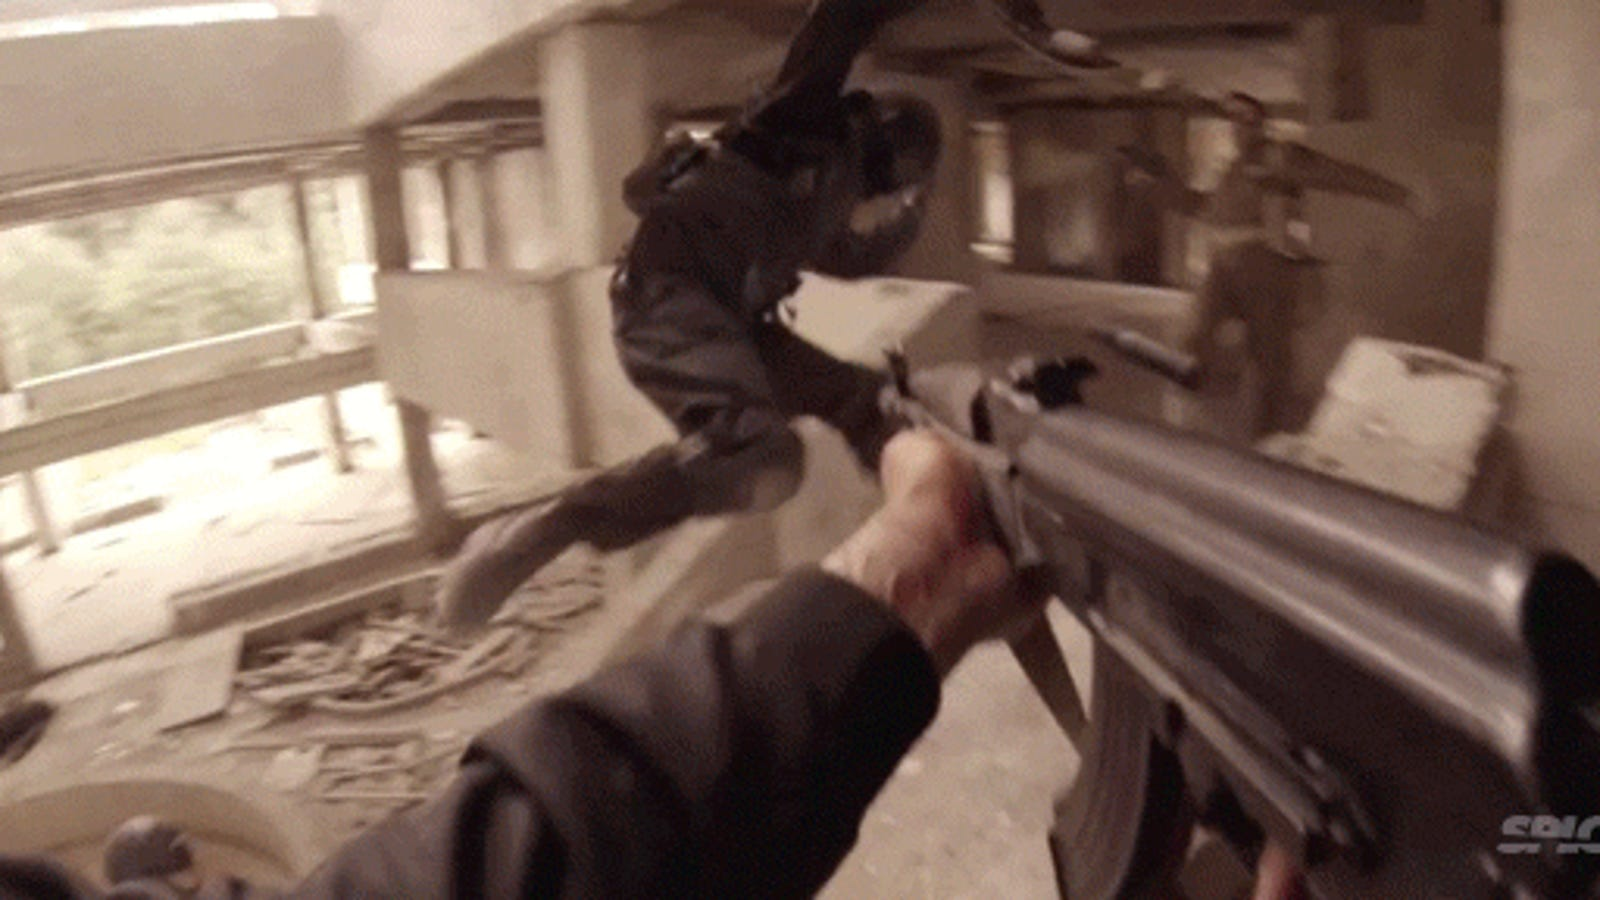 Movie filmed to look like a first person shooter game looks incredible